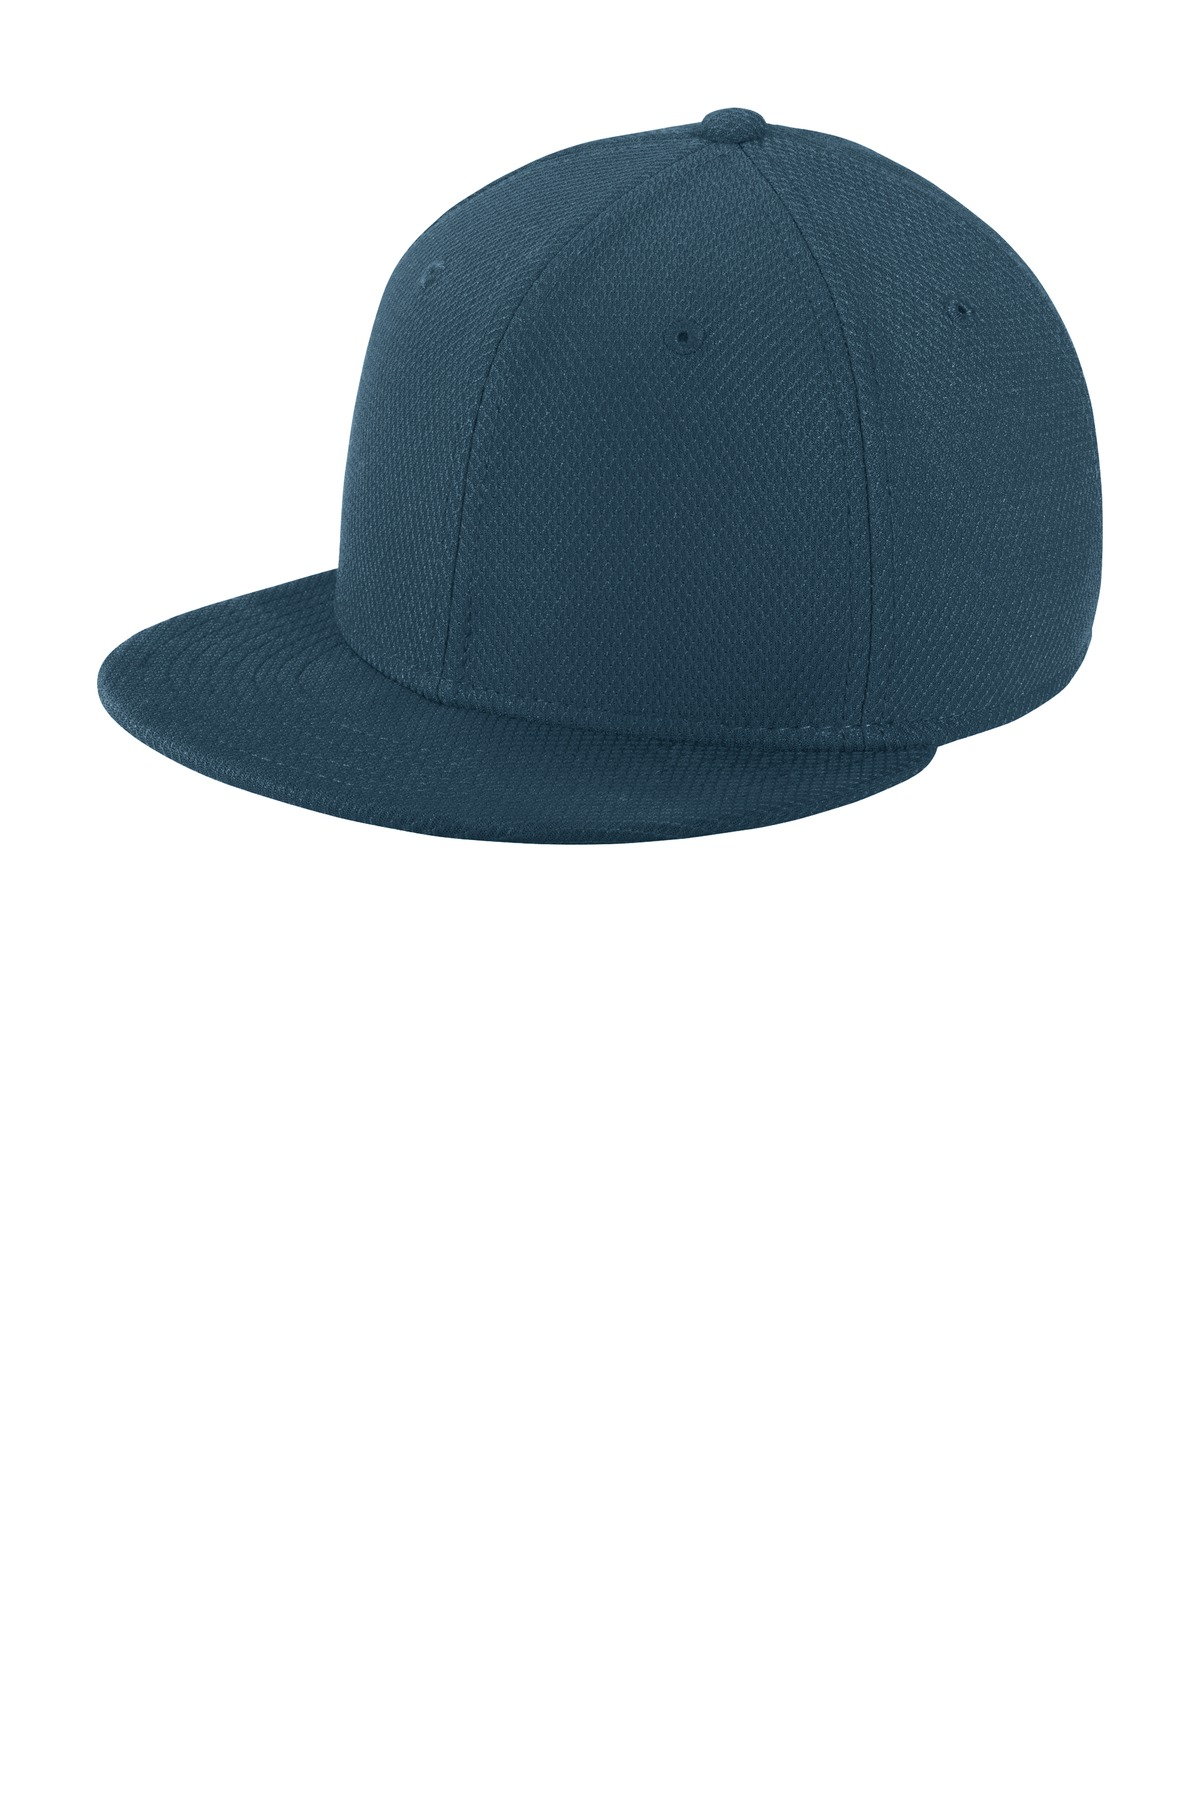 New Era  ®  Youth Original Fit Diamond Era Flat Bill Snapback Cap. NE304 - Deep Navy